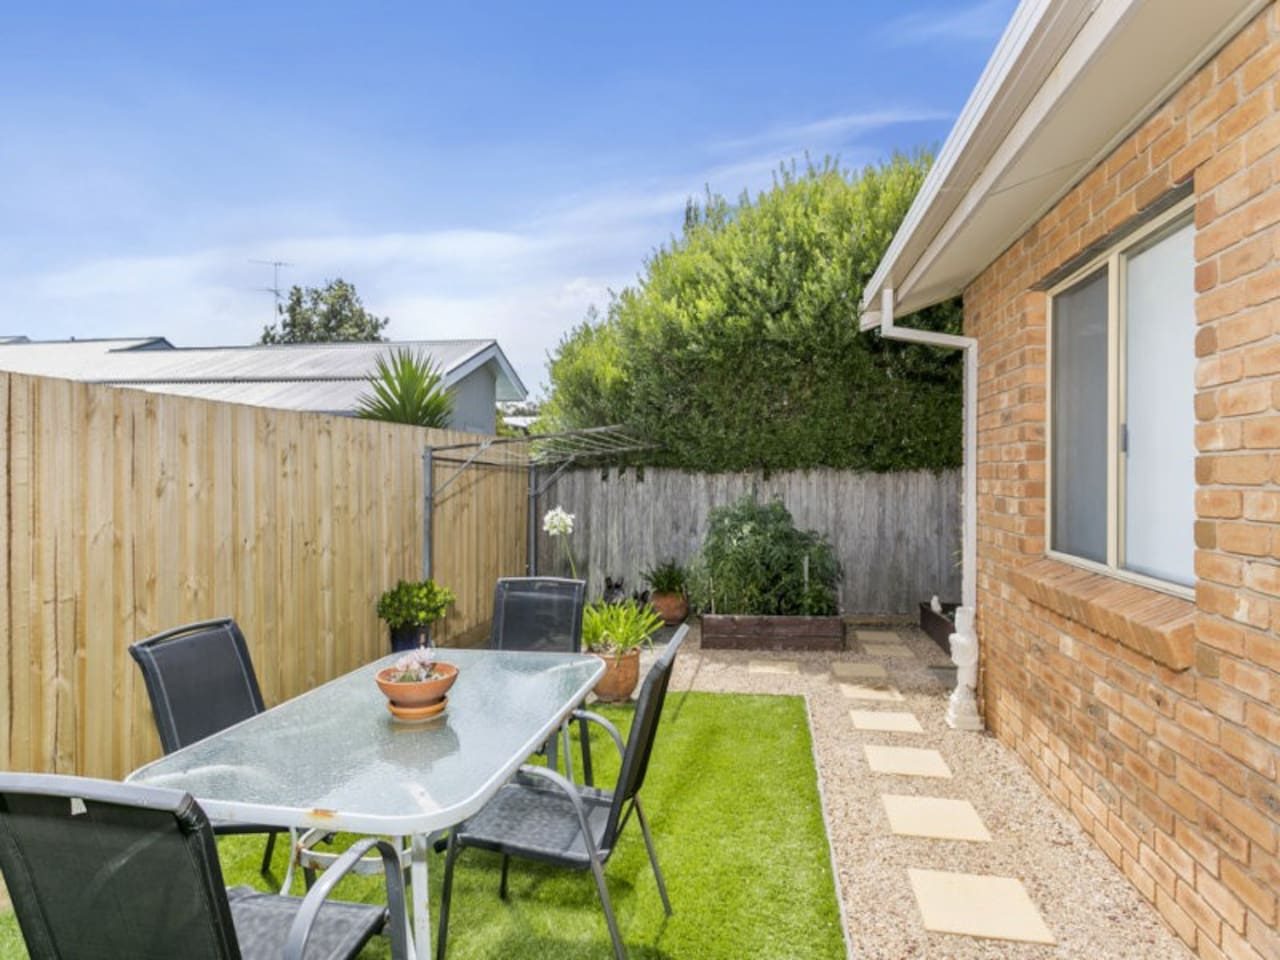 The L-shaped backyard faces north and is the perfect area for sun drenched BBQs and outside dining.